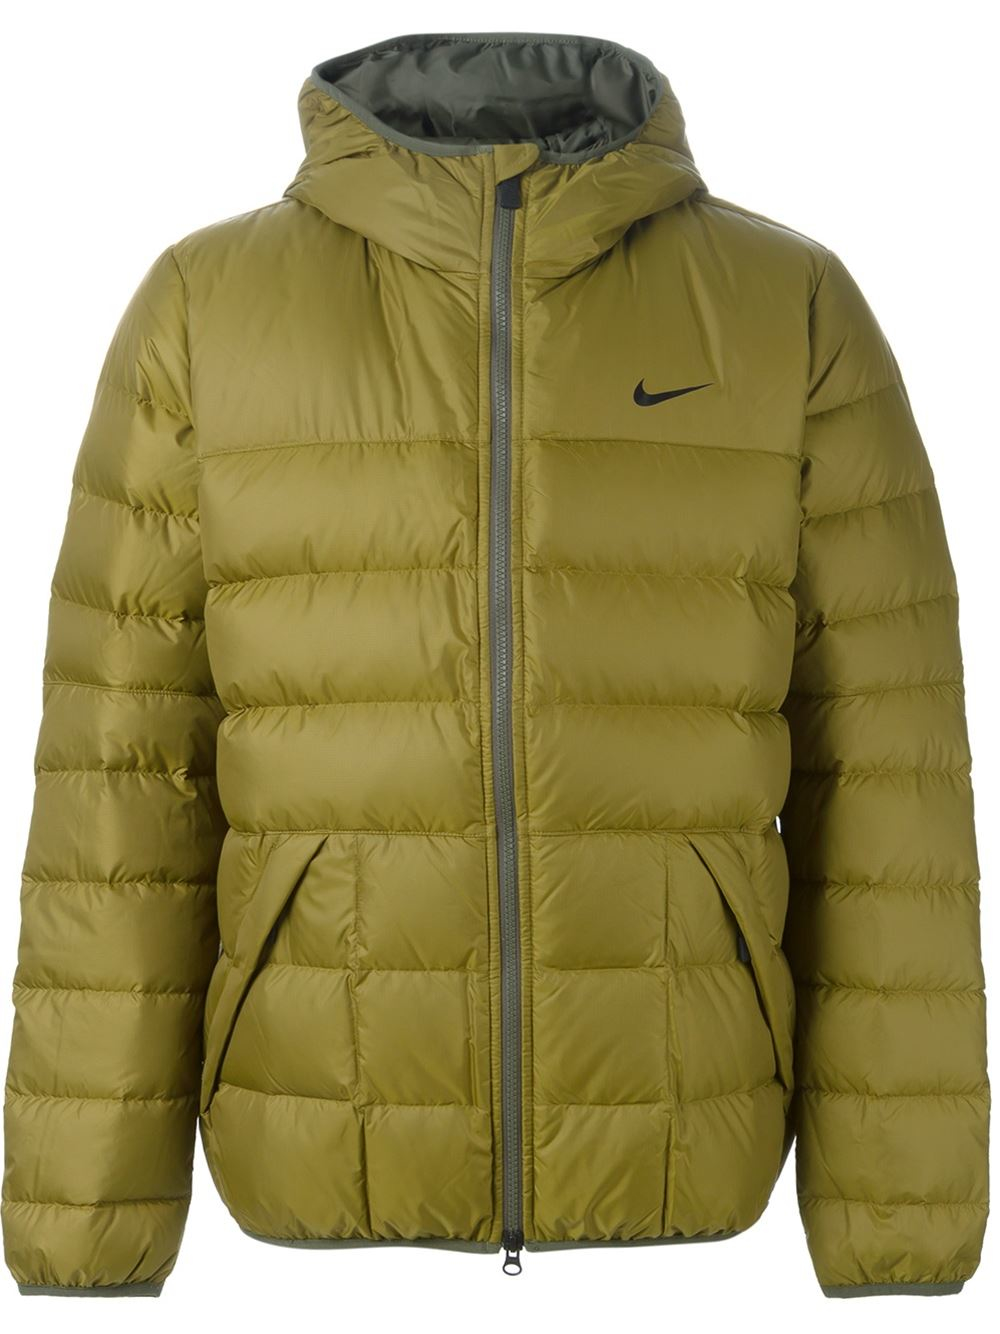 Nike down feather jacket